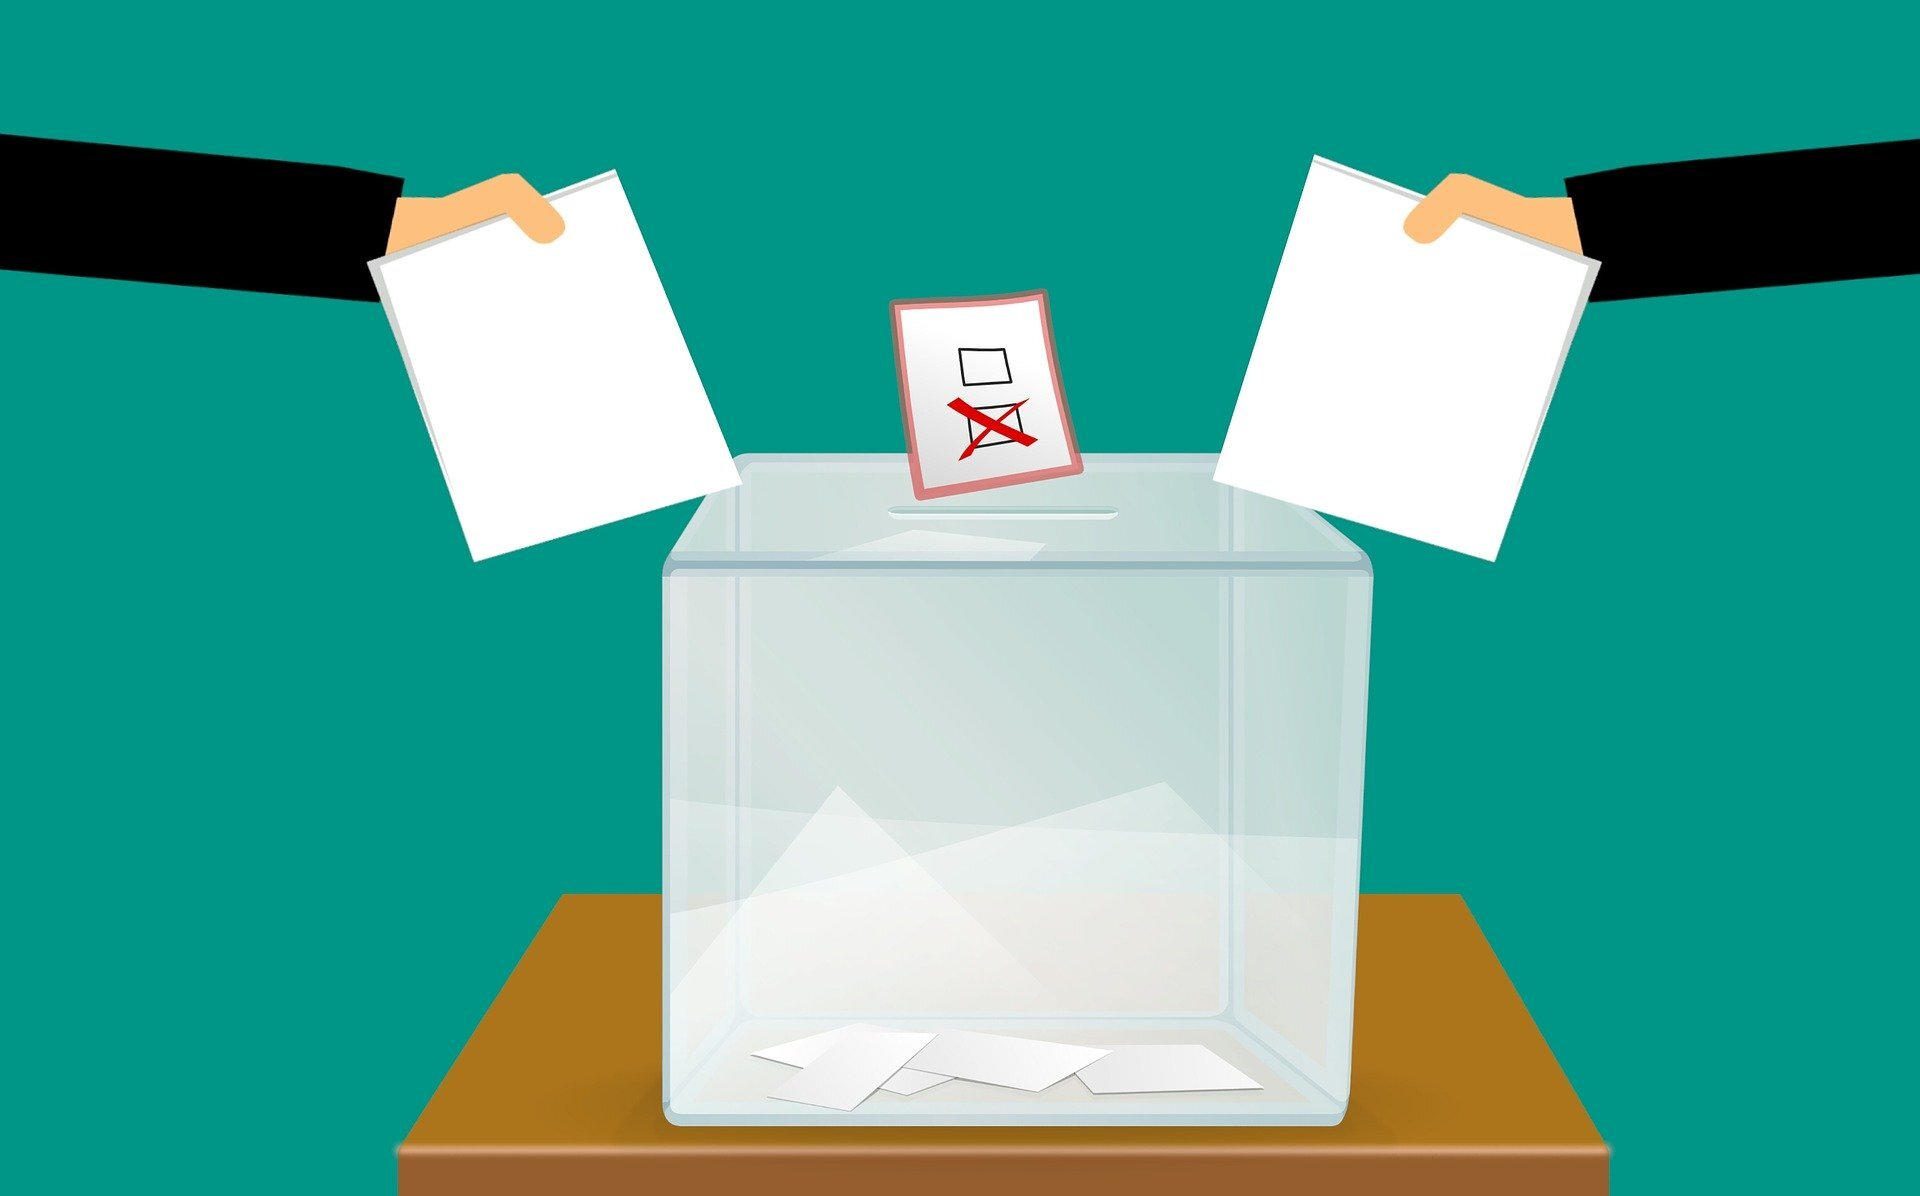 Who does the electoral college favor?